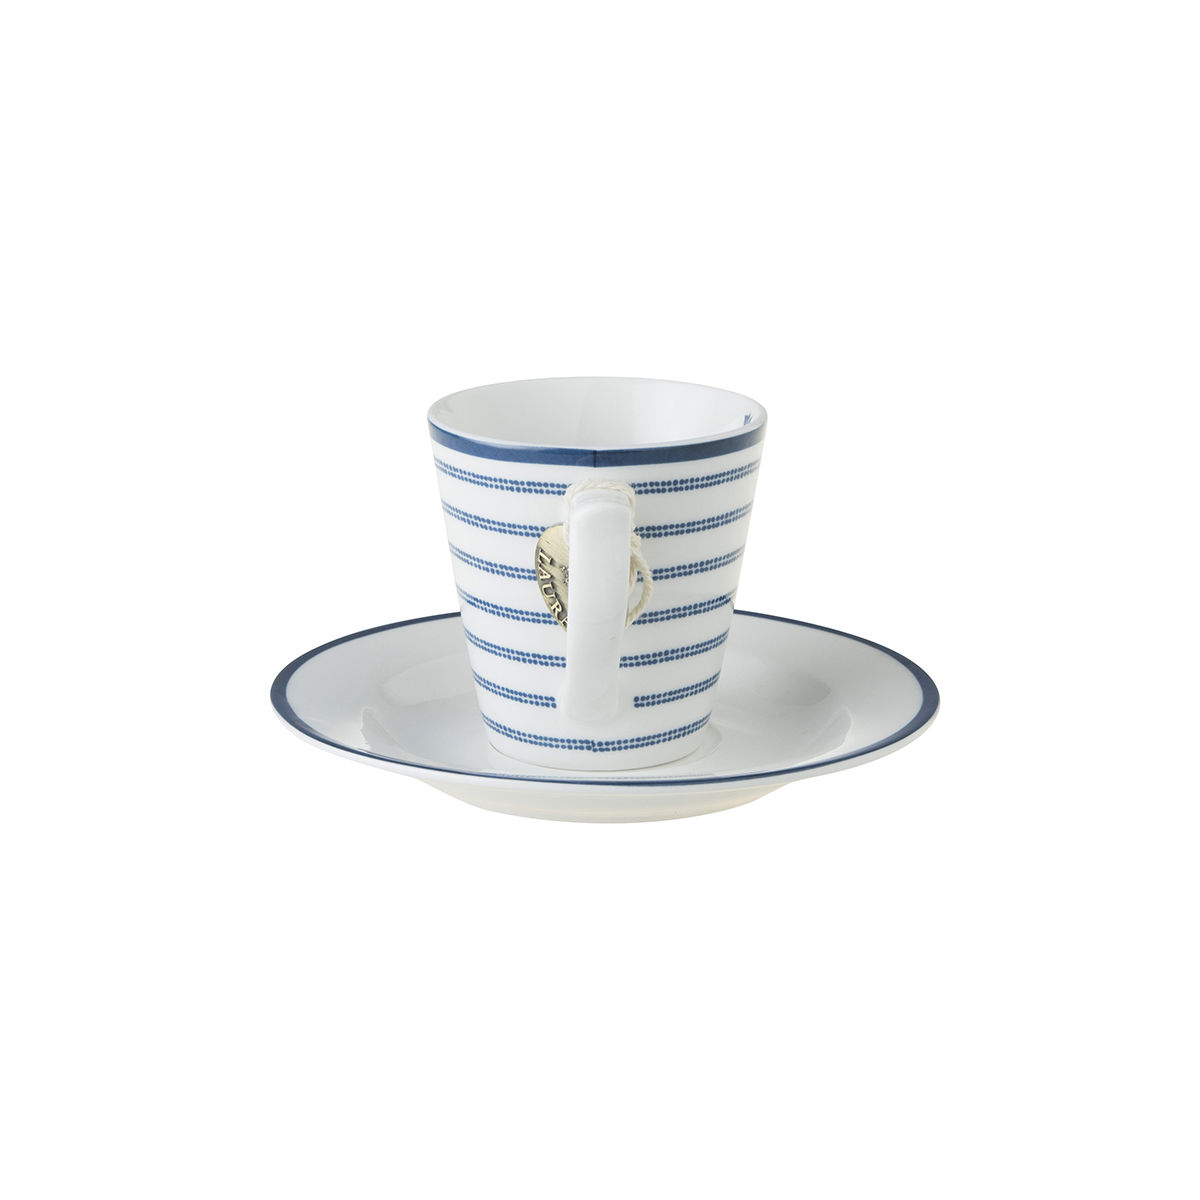 Laura Ashley Espresso Cup and Saucer Candy Stripe - product images  of